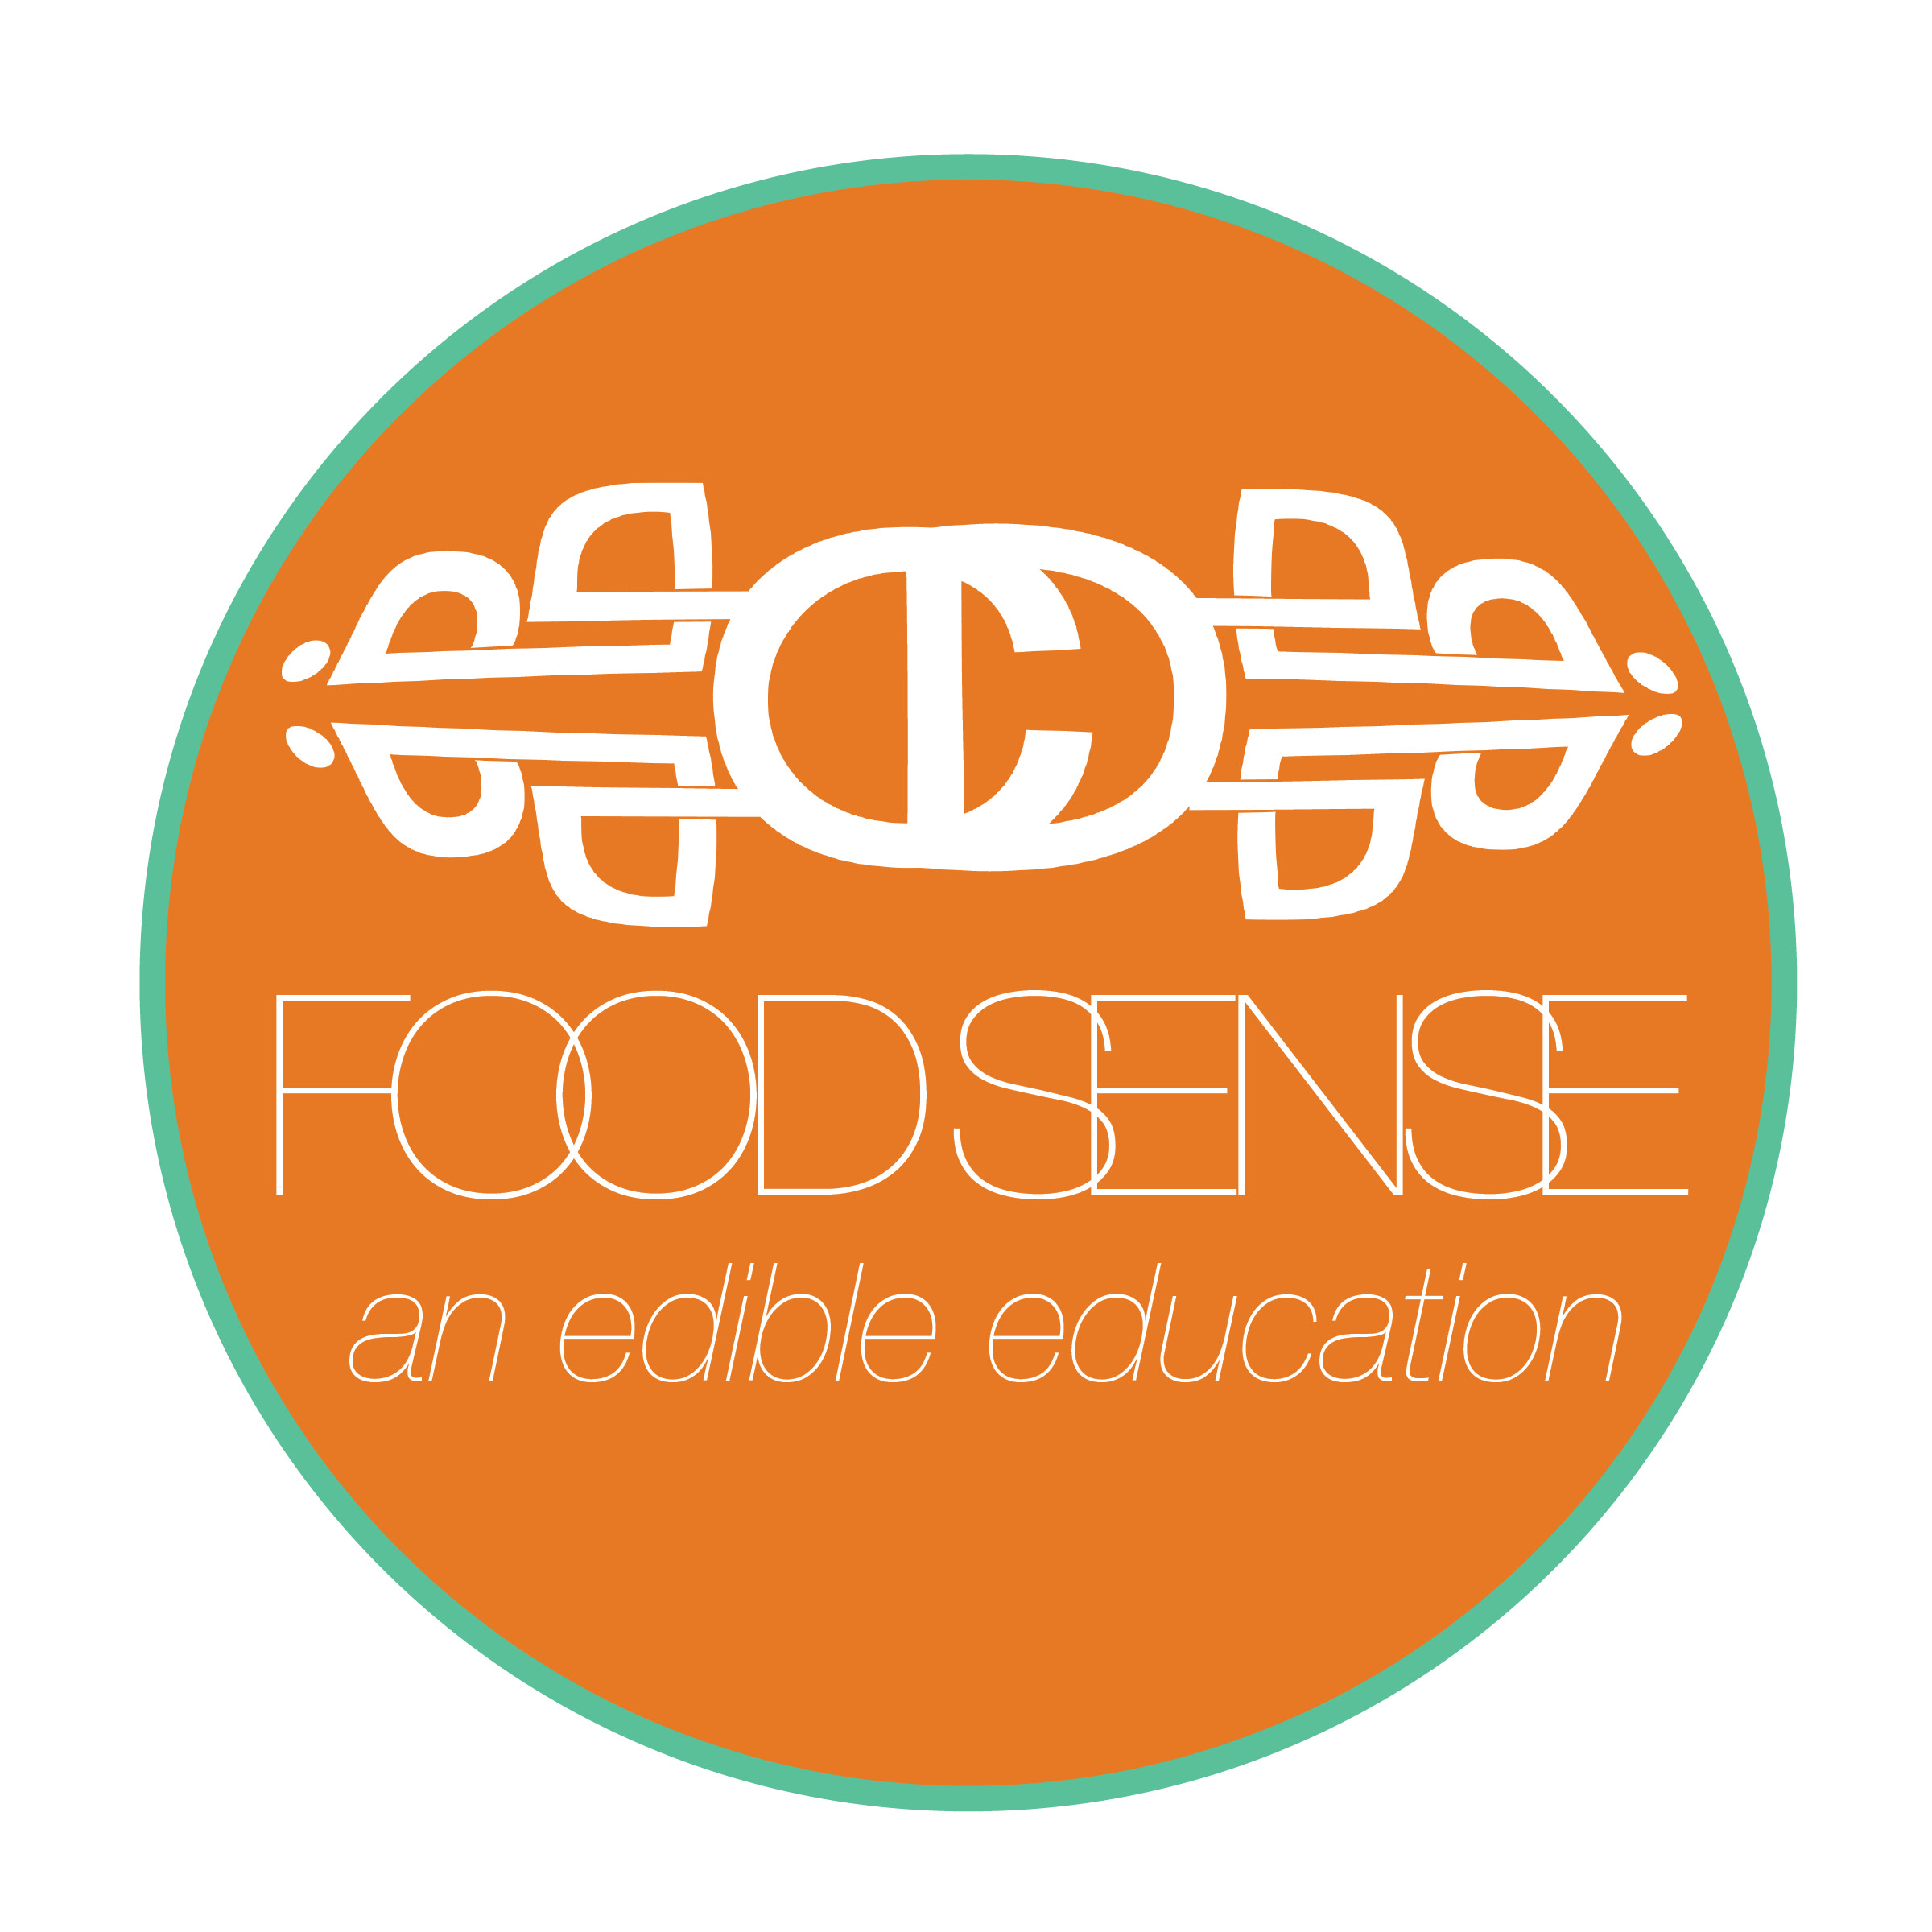 CD Food Sense logo.jpg